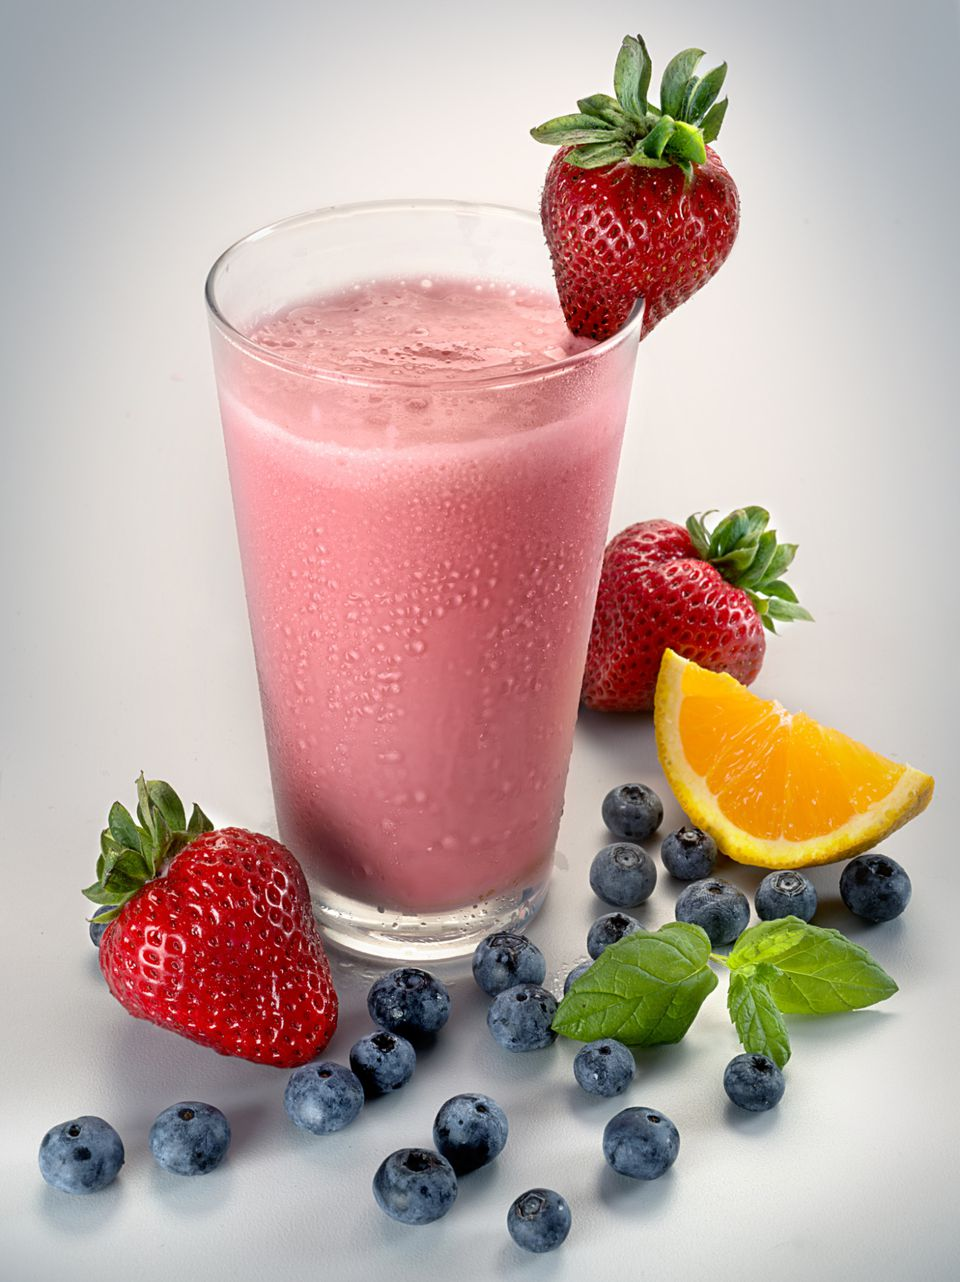 Blueberry and Strawberry Smoothie